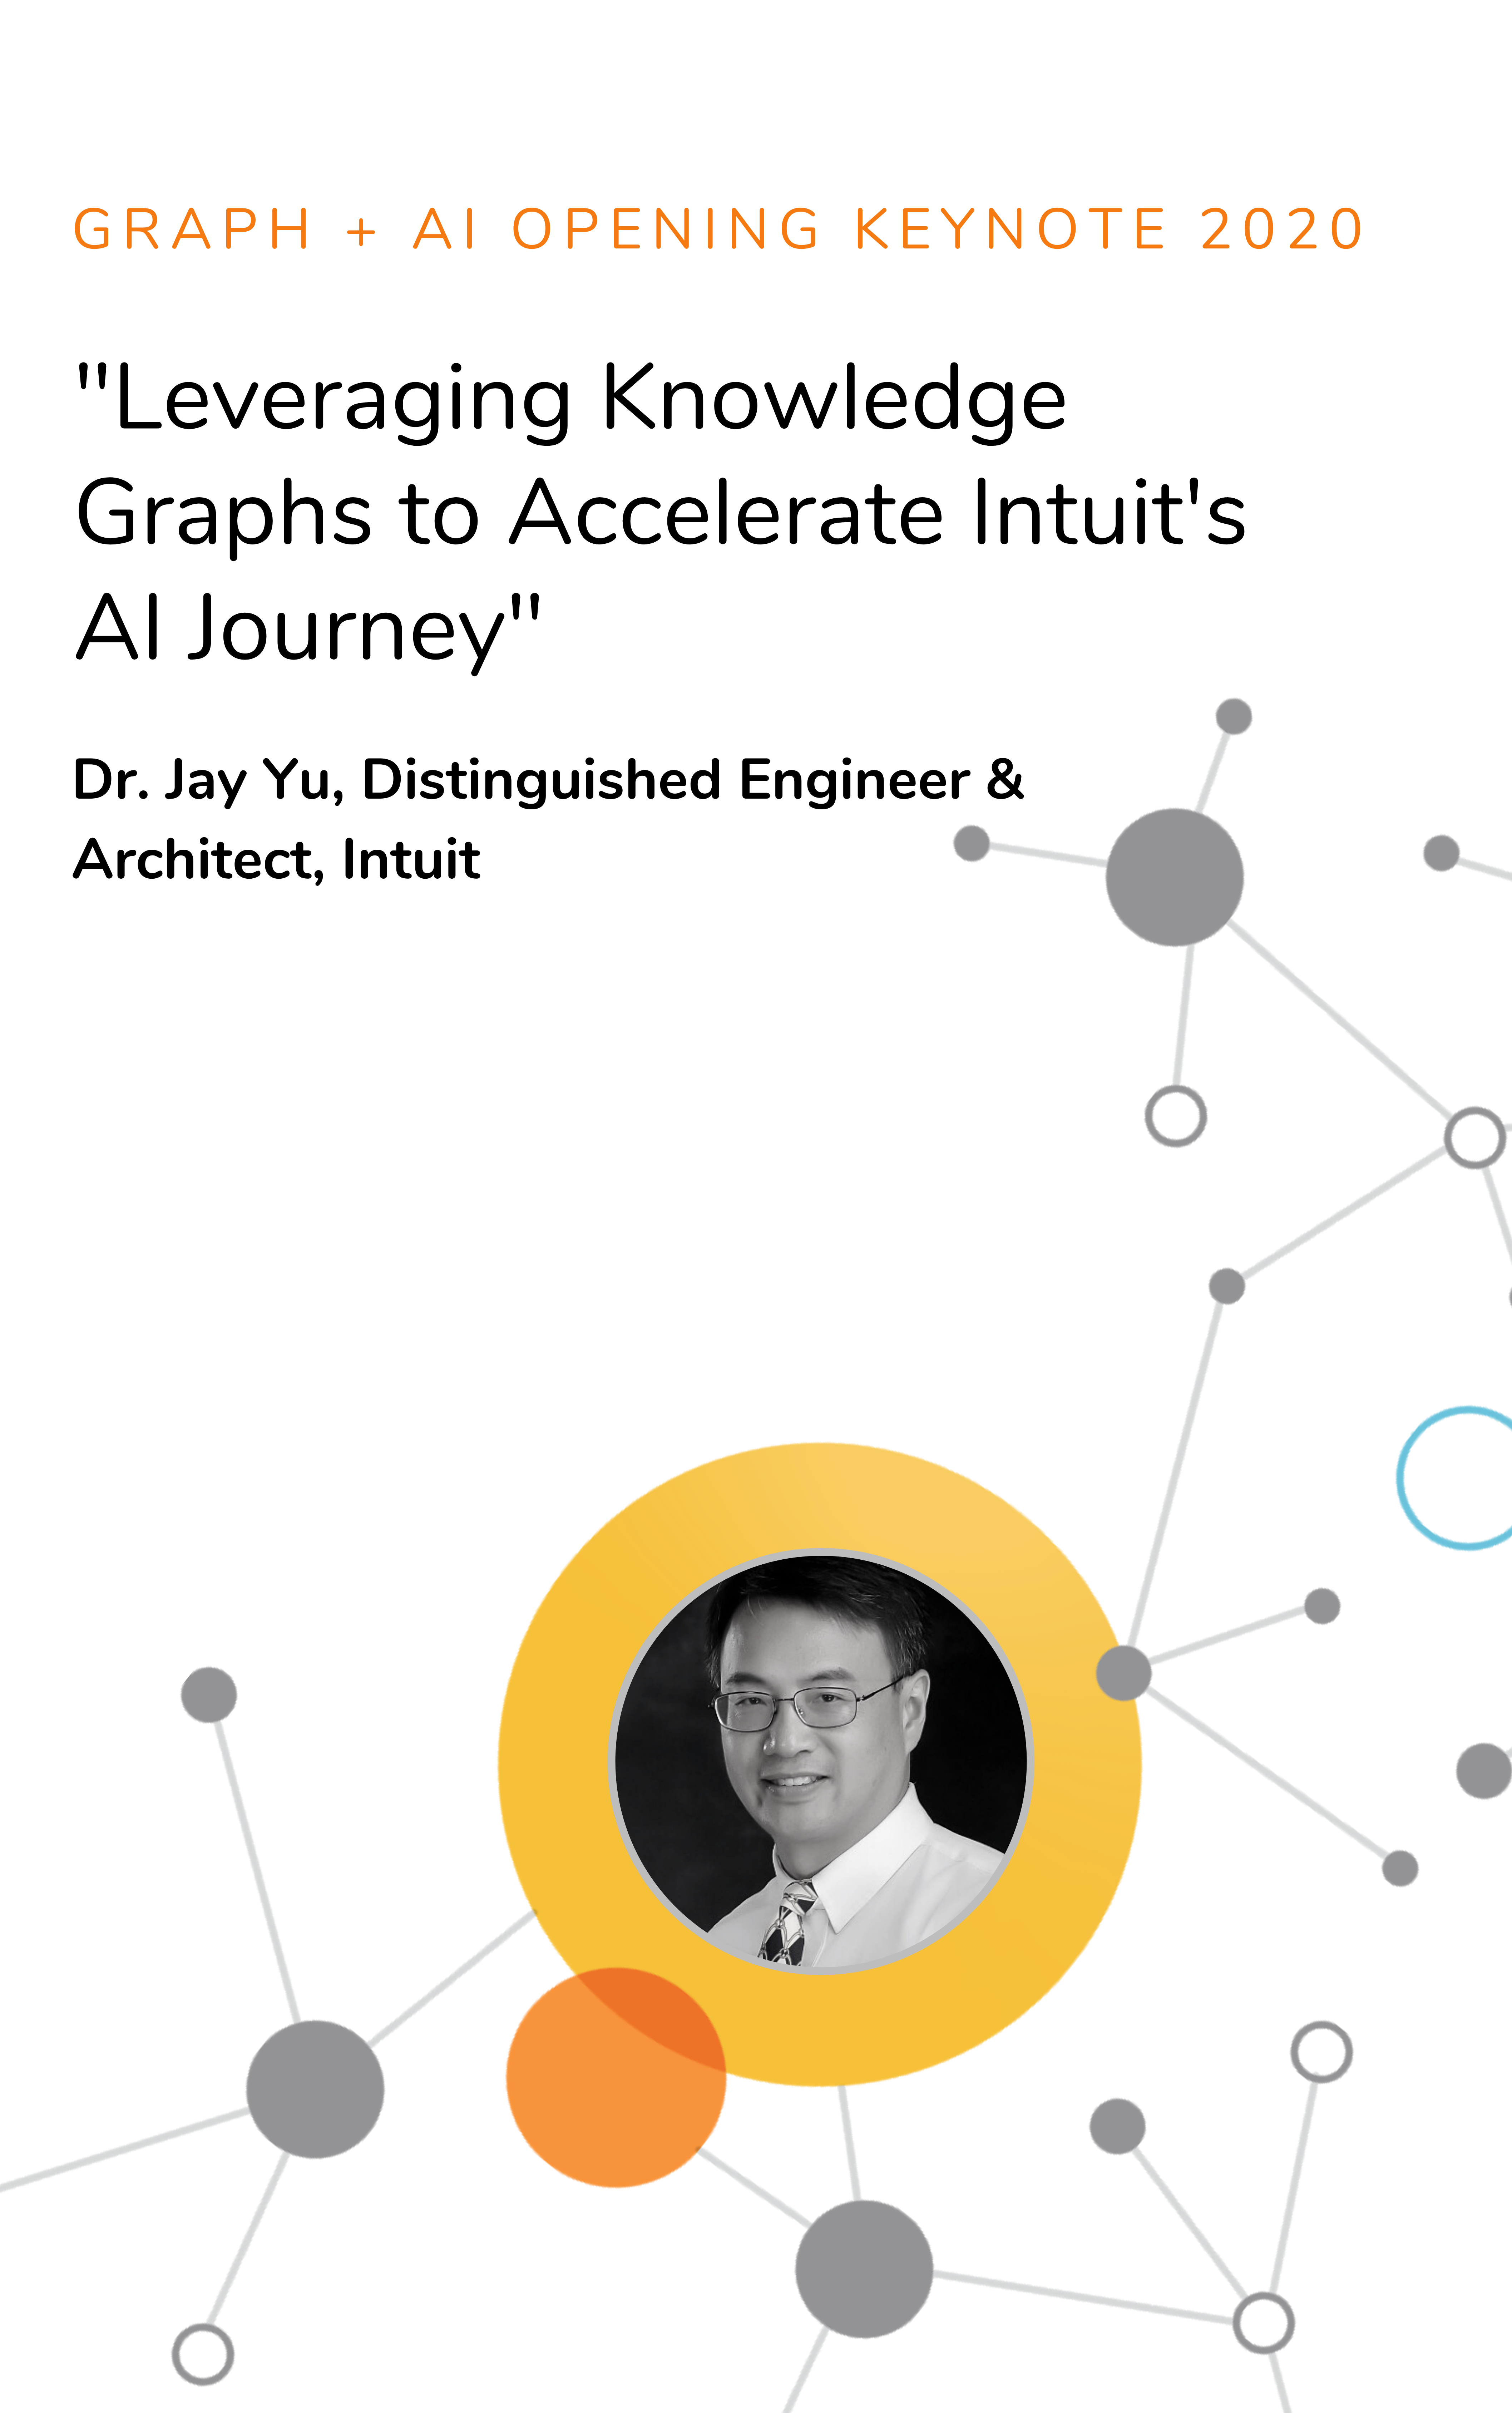 Dr. Jay Yu, Intuit